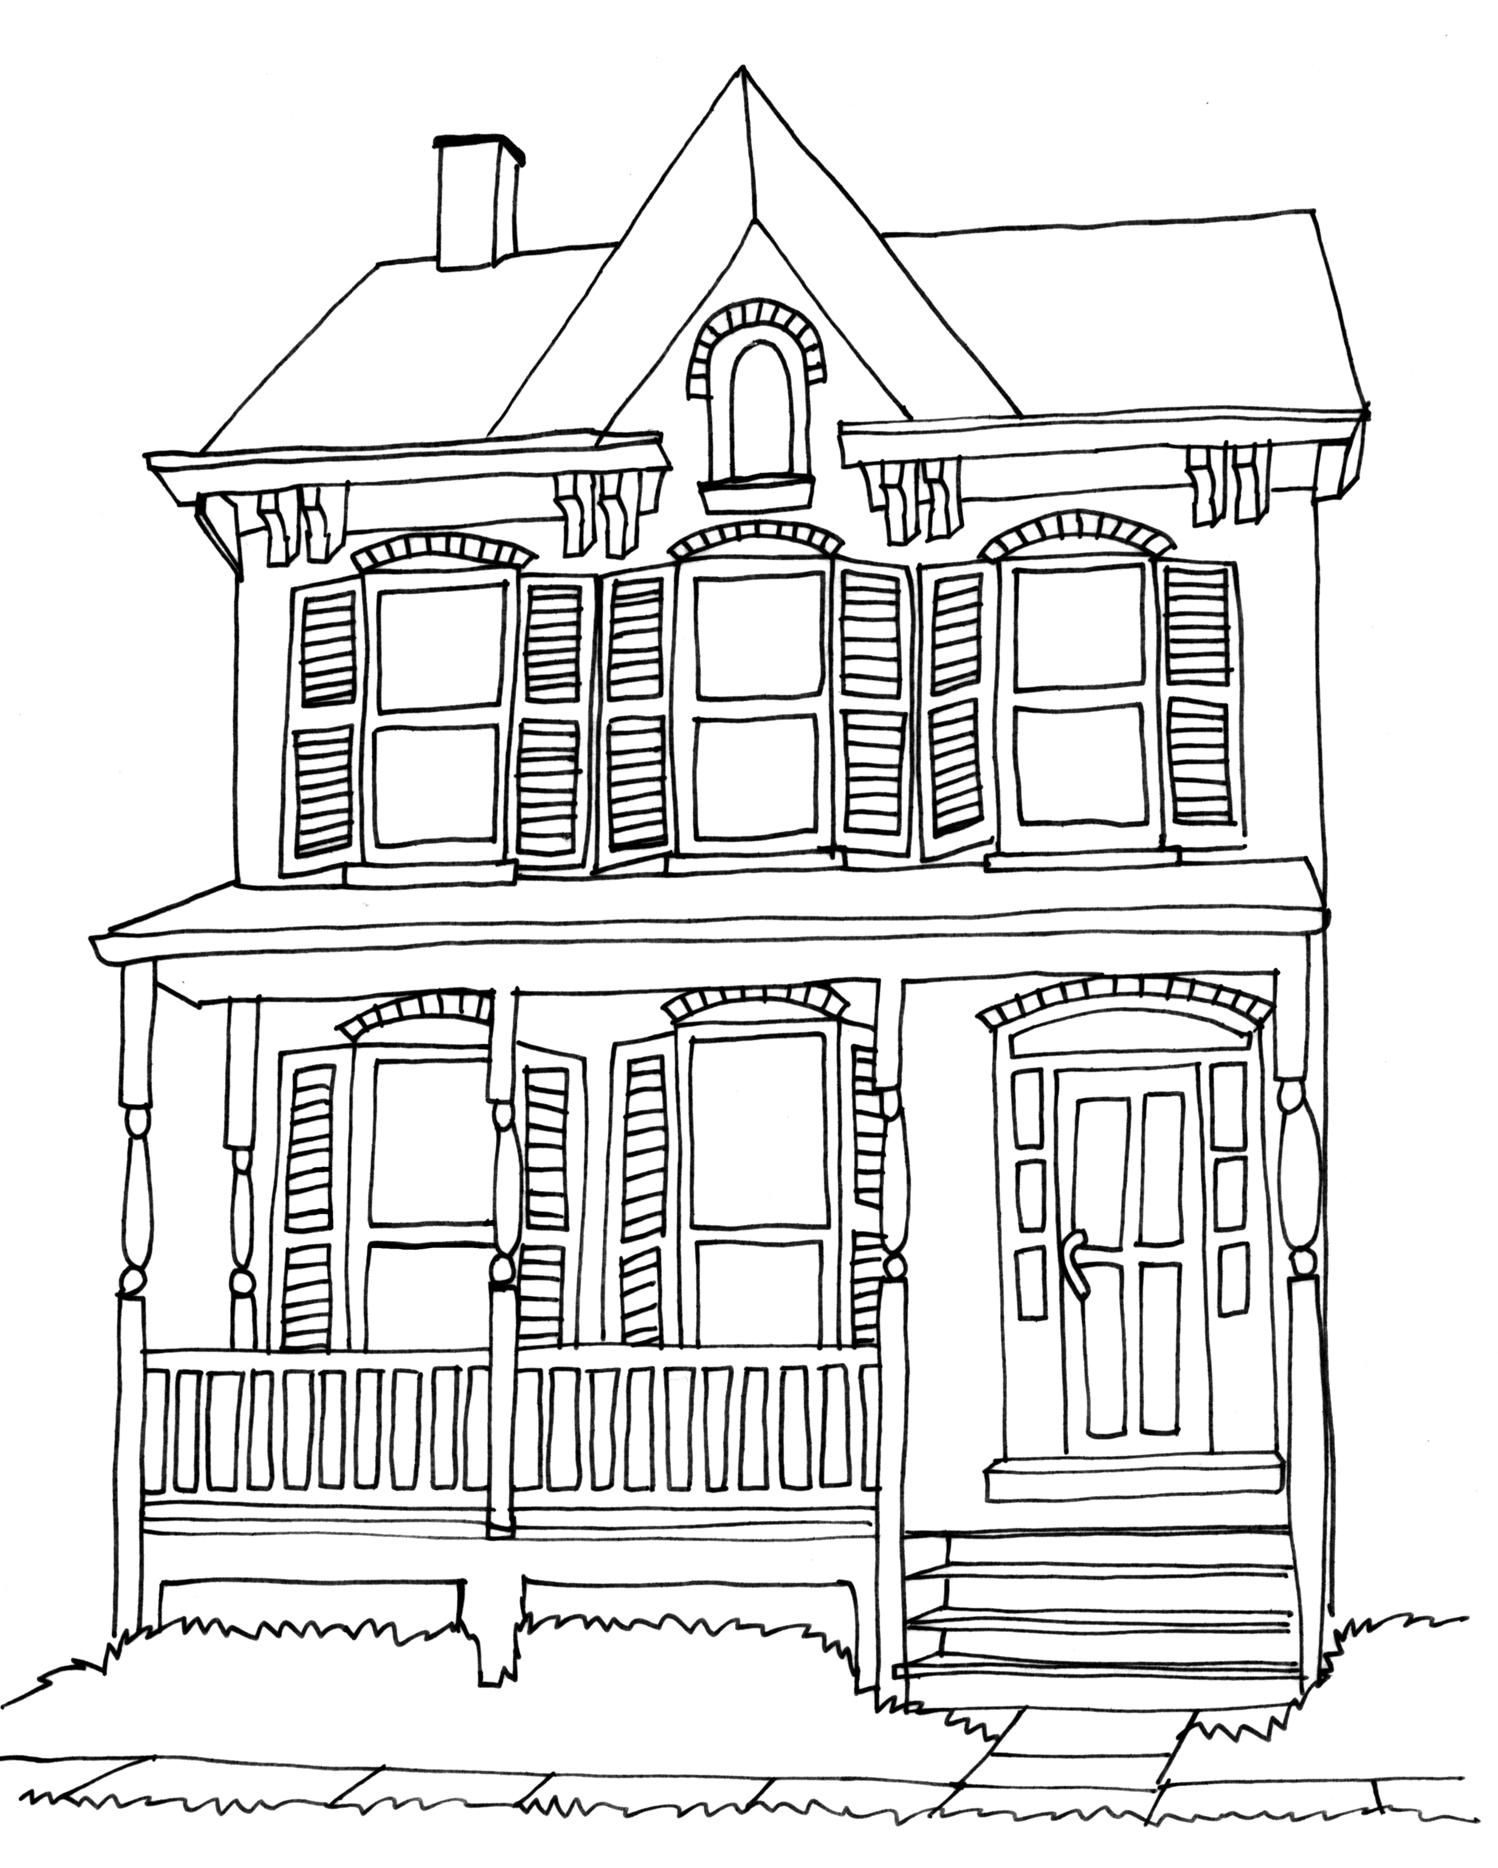 Line Drawing Of Your House : Simple house drawing at getdrawings free for